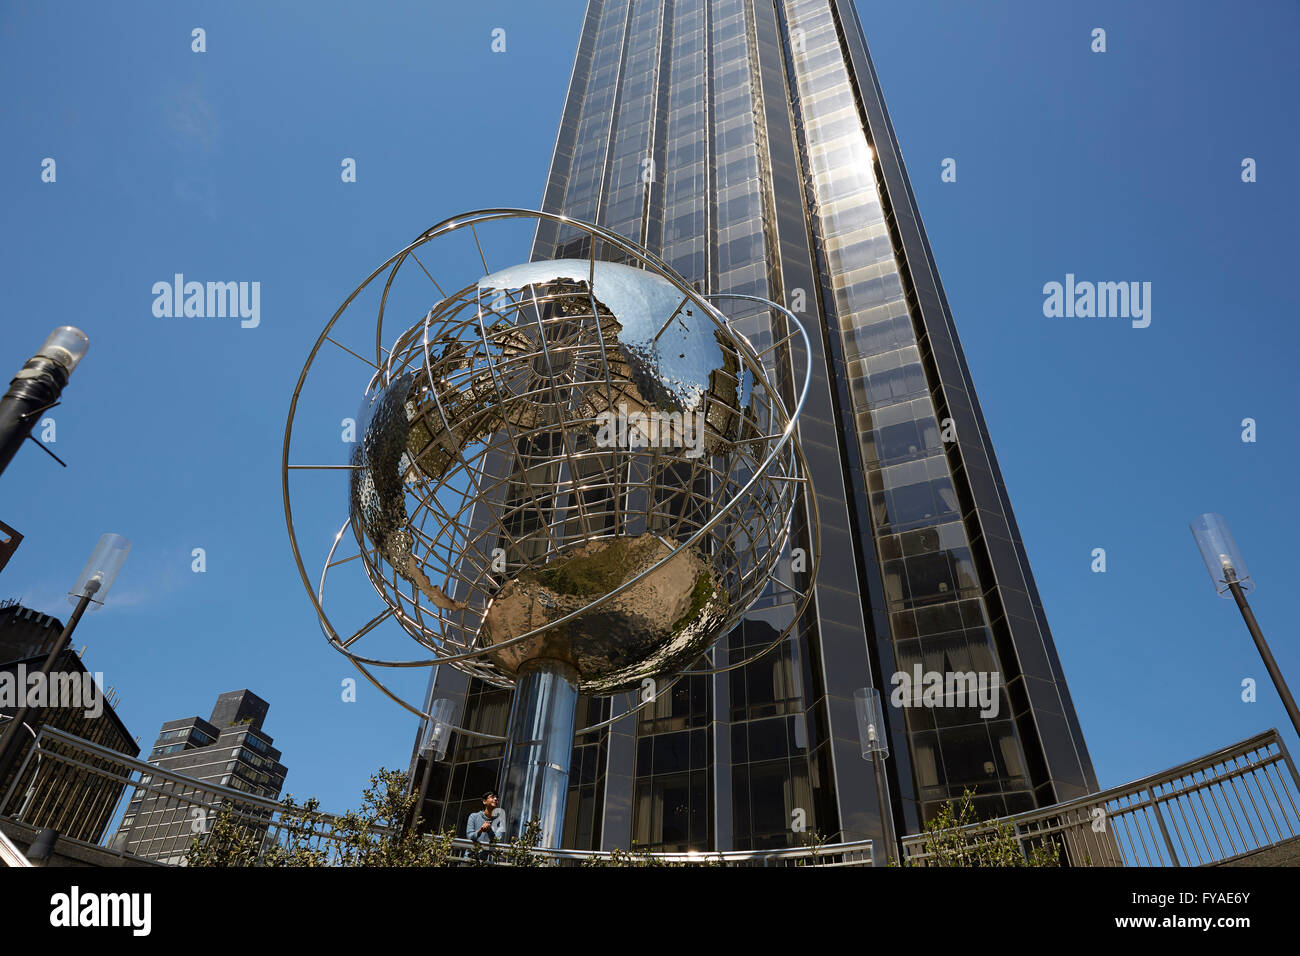 24 april new york ny usa trump international hotel and tower 1 central park west on columbus circle between central park we